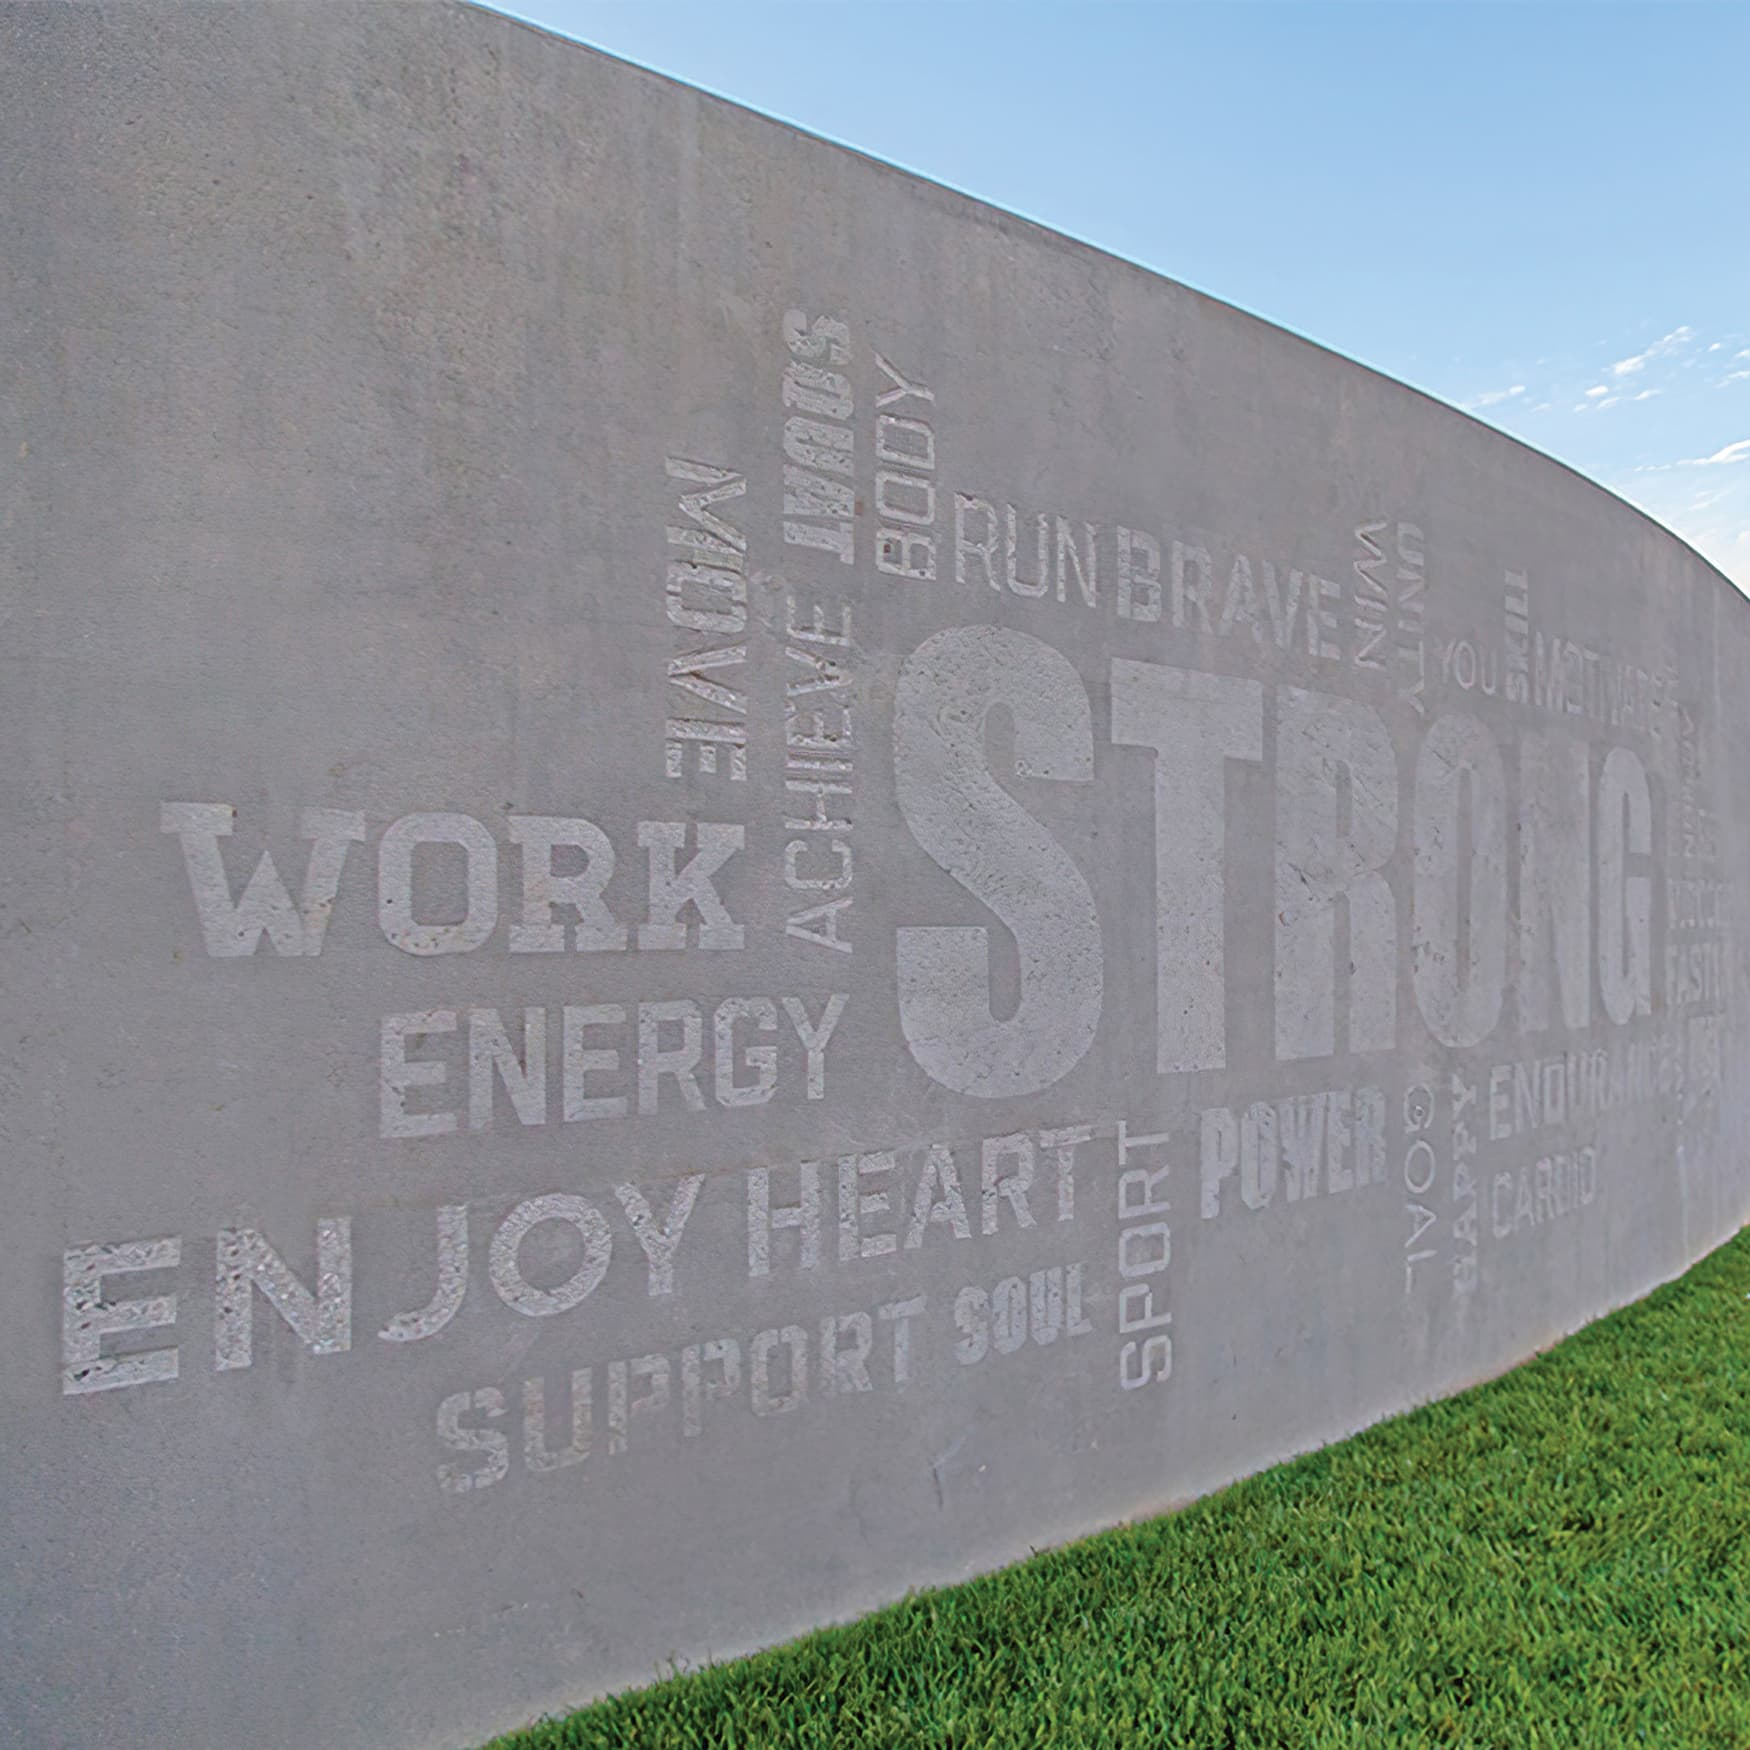 Specialty super graphic typography wall design located at The Pools in Irvine California